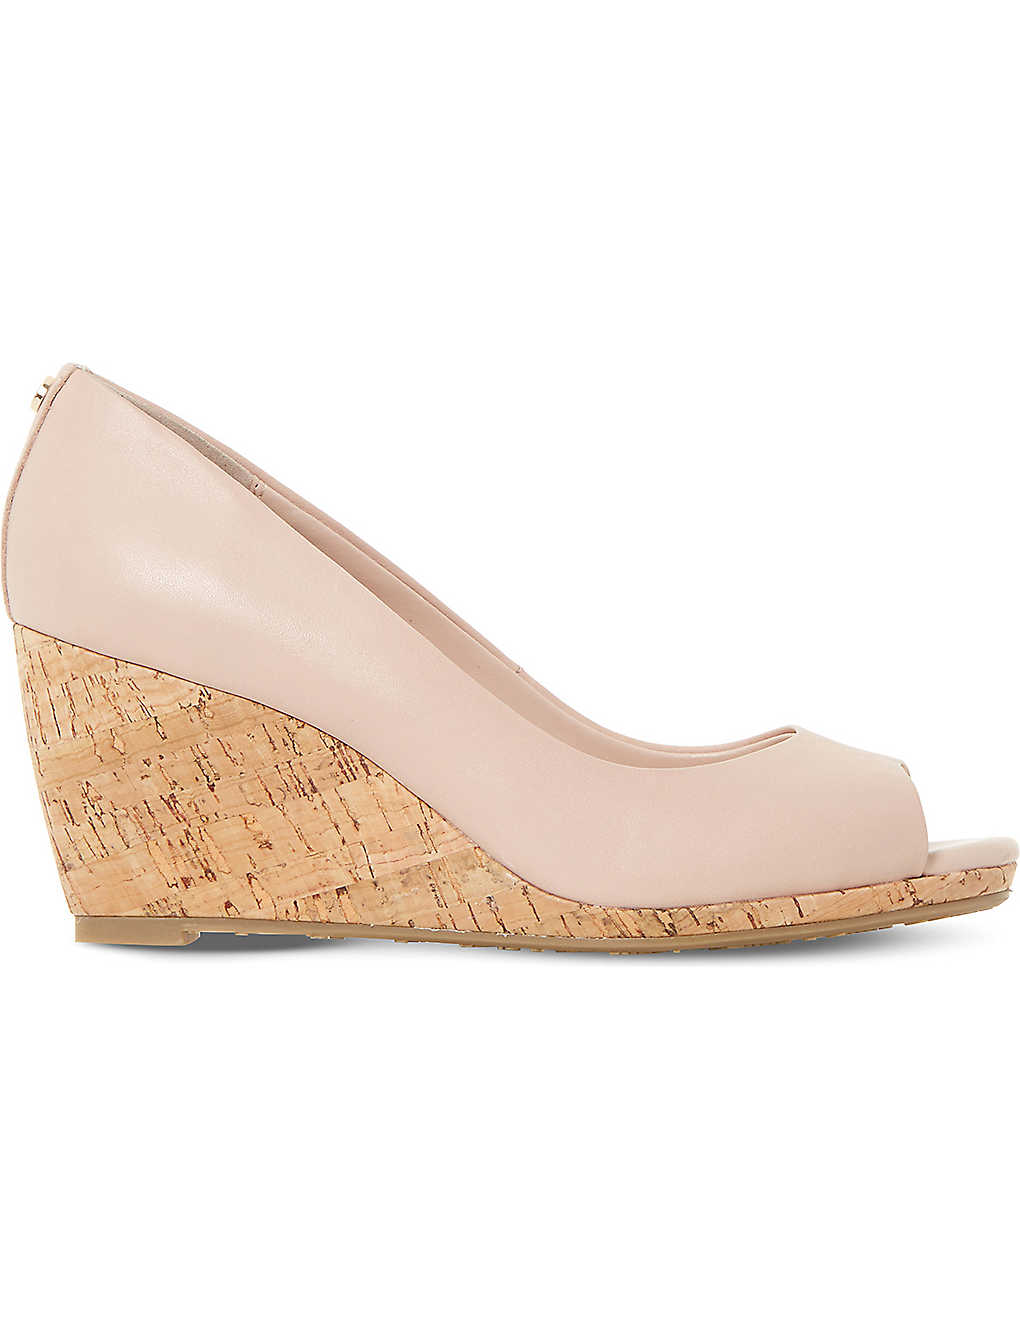 10d69e6b59c DUNE - Cadence leather cork wedge courts